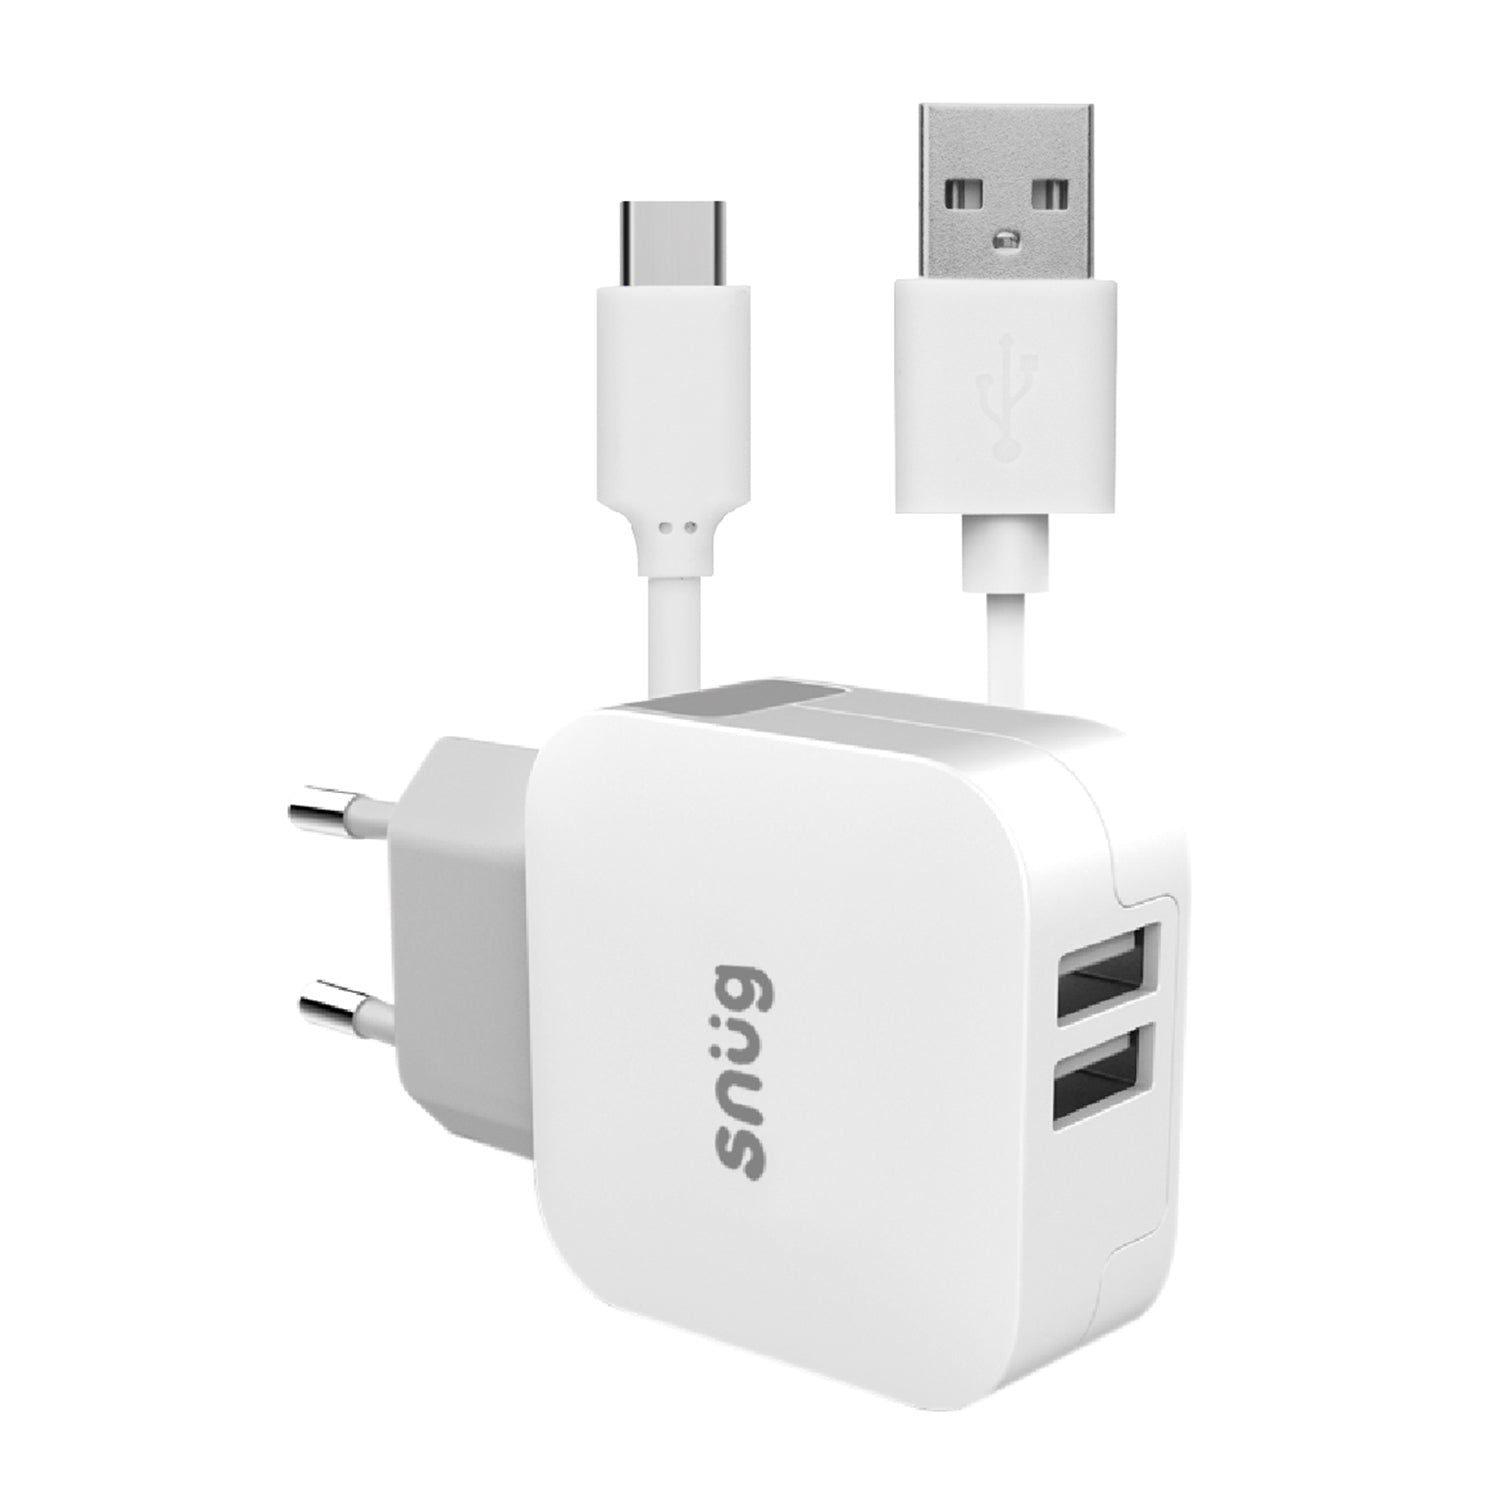 Snüg Home Charger 2 USB Port 3.4 Amp Charger – Type C